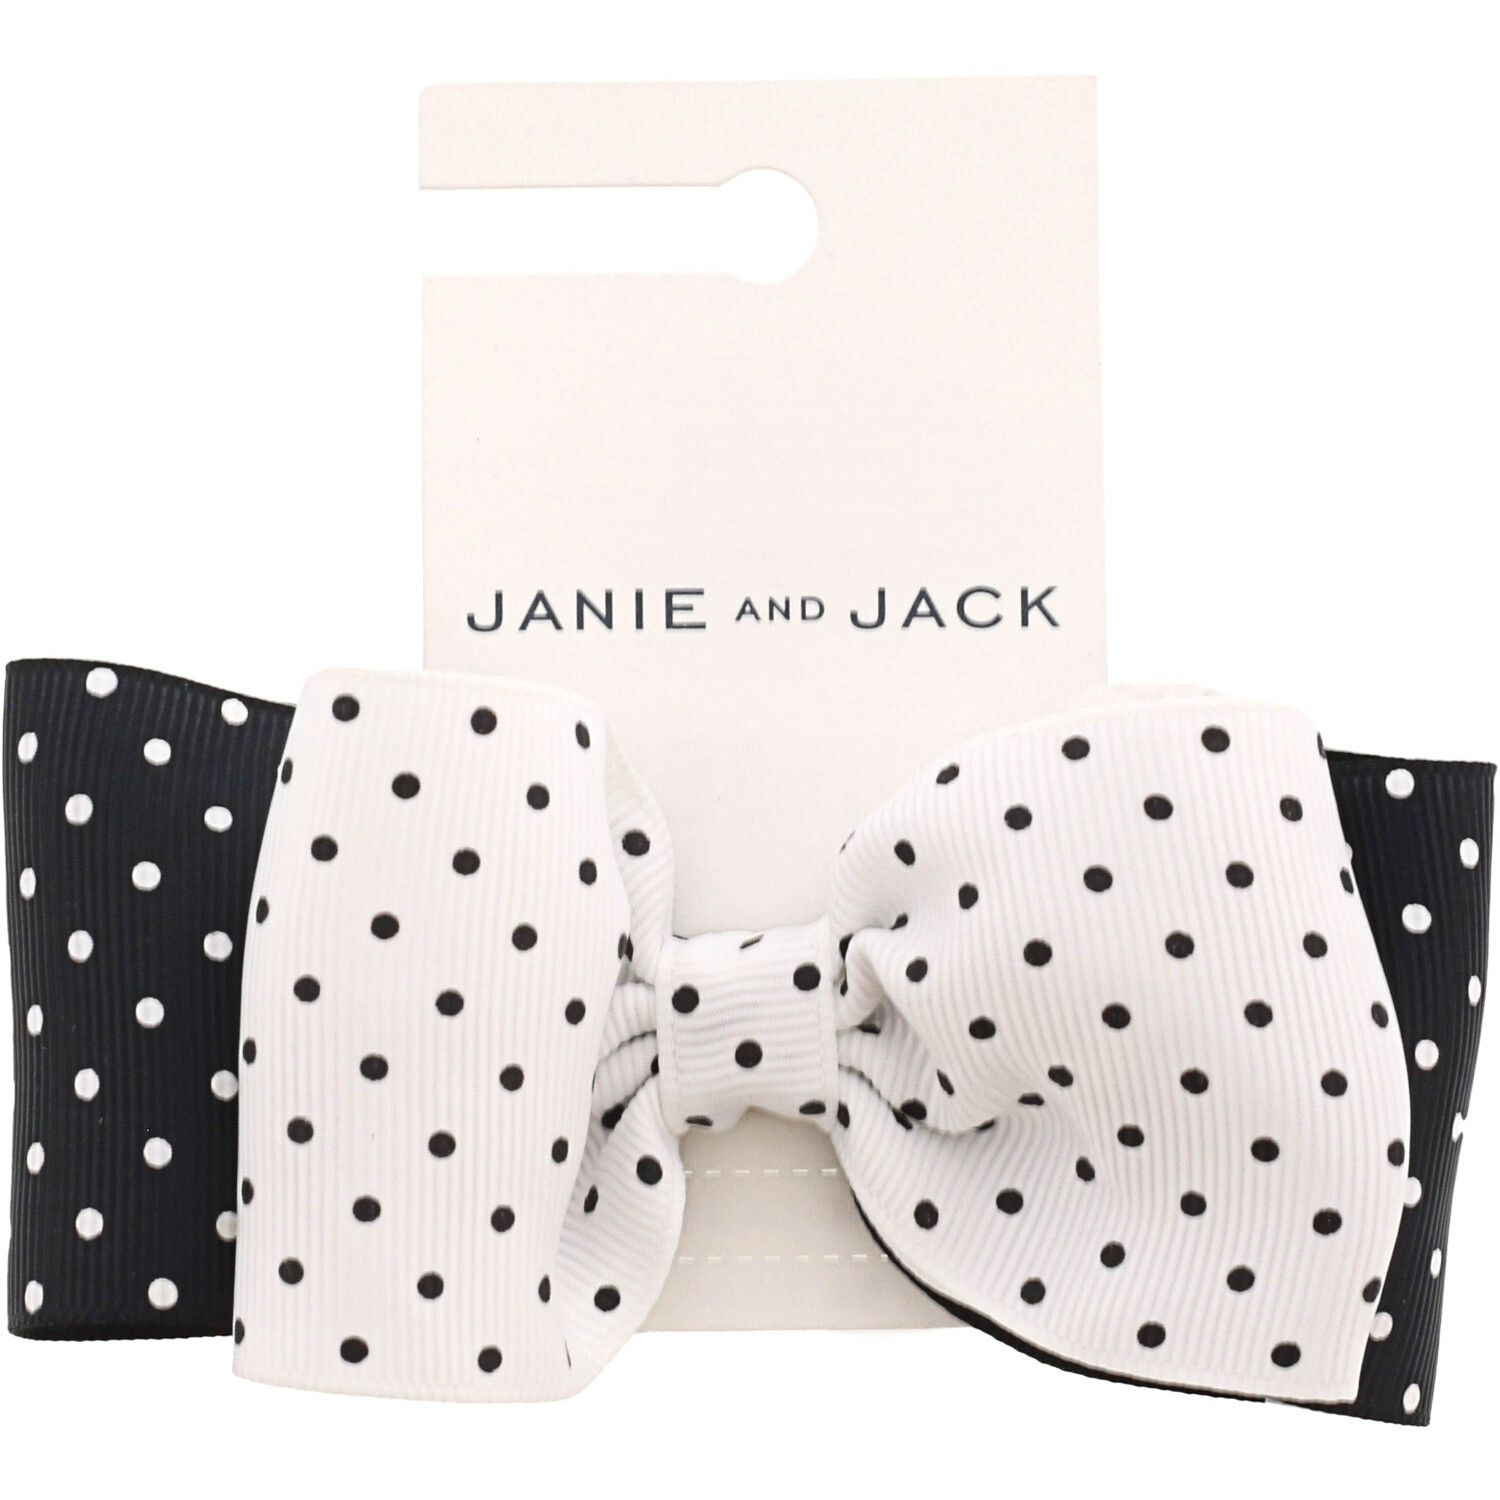 Janie And Jack Dot Bow Barrette Hair Accessory - One Size - White Dot